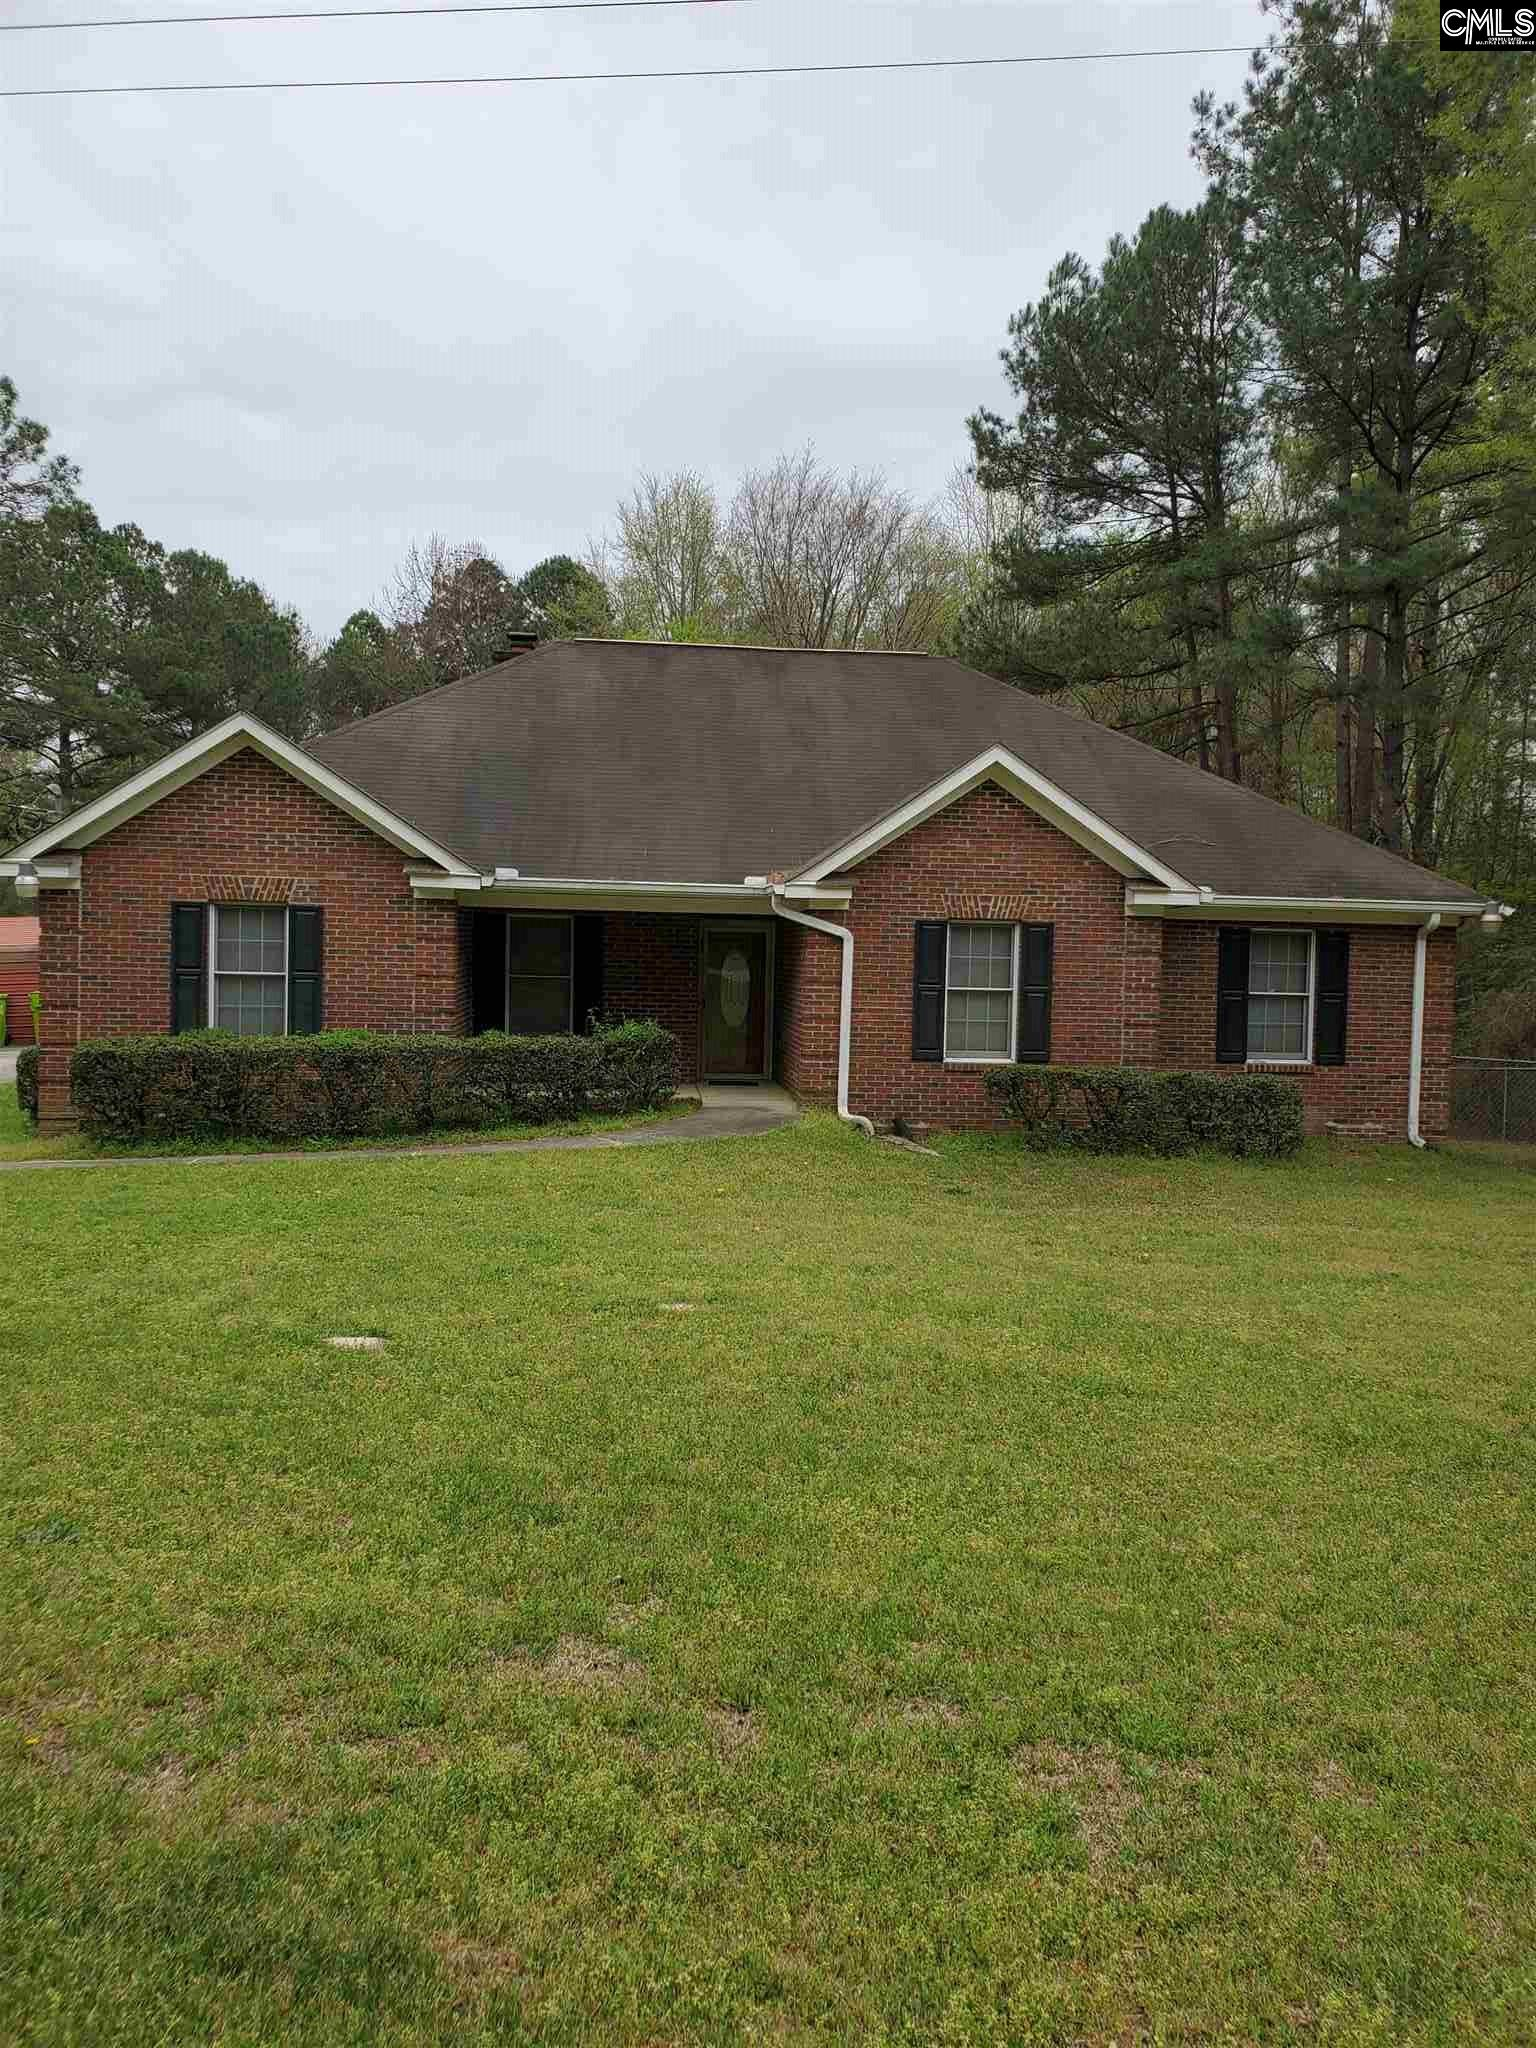 839 Old Bluff Hopkins, SC 29061